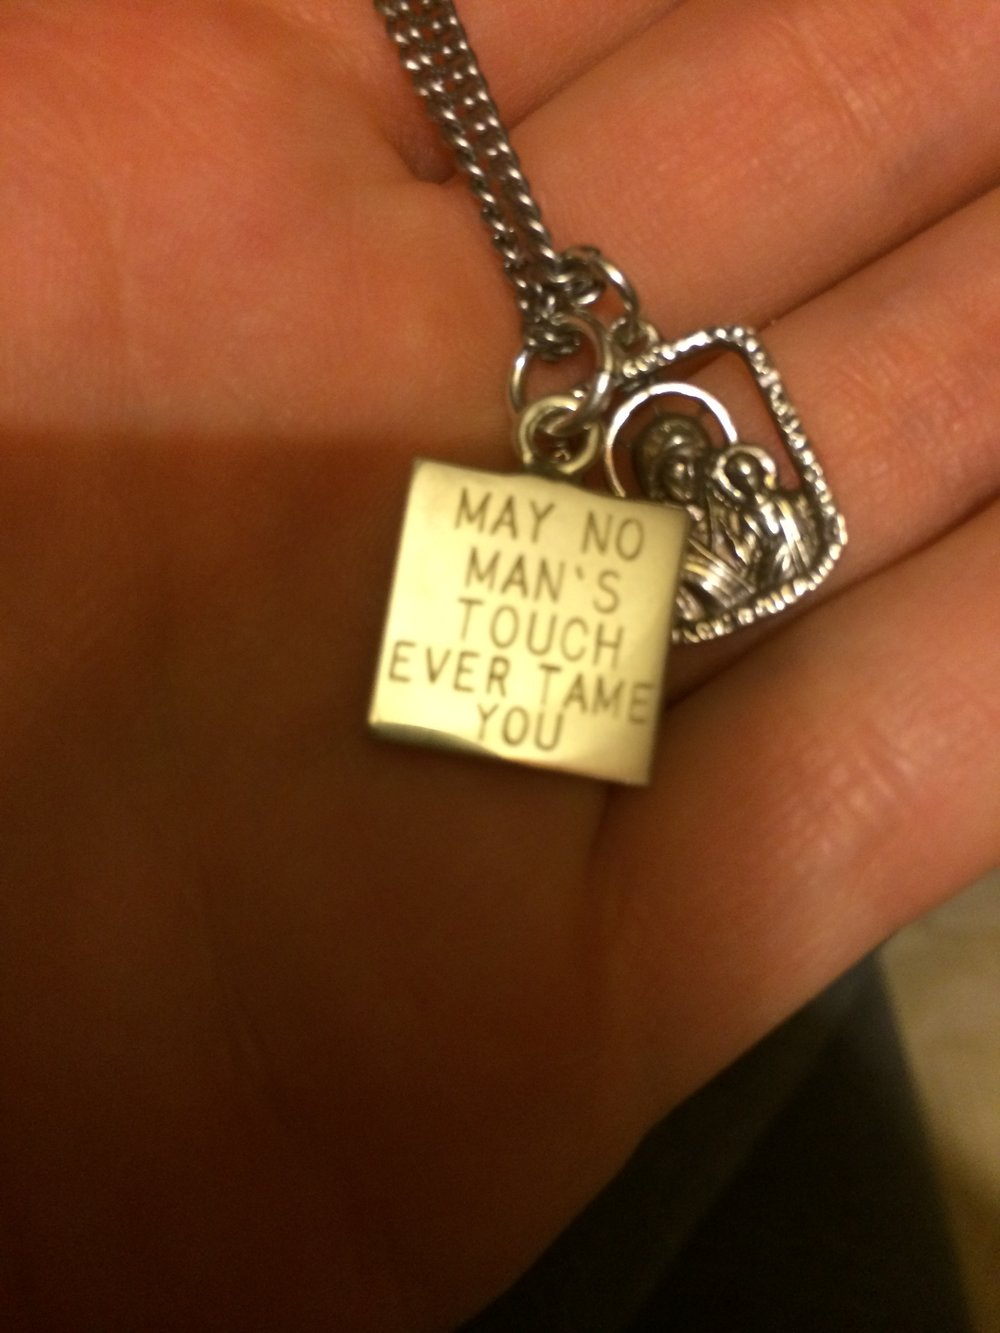 I also did strange things like make symbolic jewelry after breaking up with assholes who scared the bajeezus out of me. This necklace charm has a quote from a favorite Ray LaMontagne song of mine.